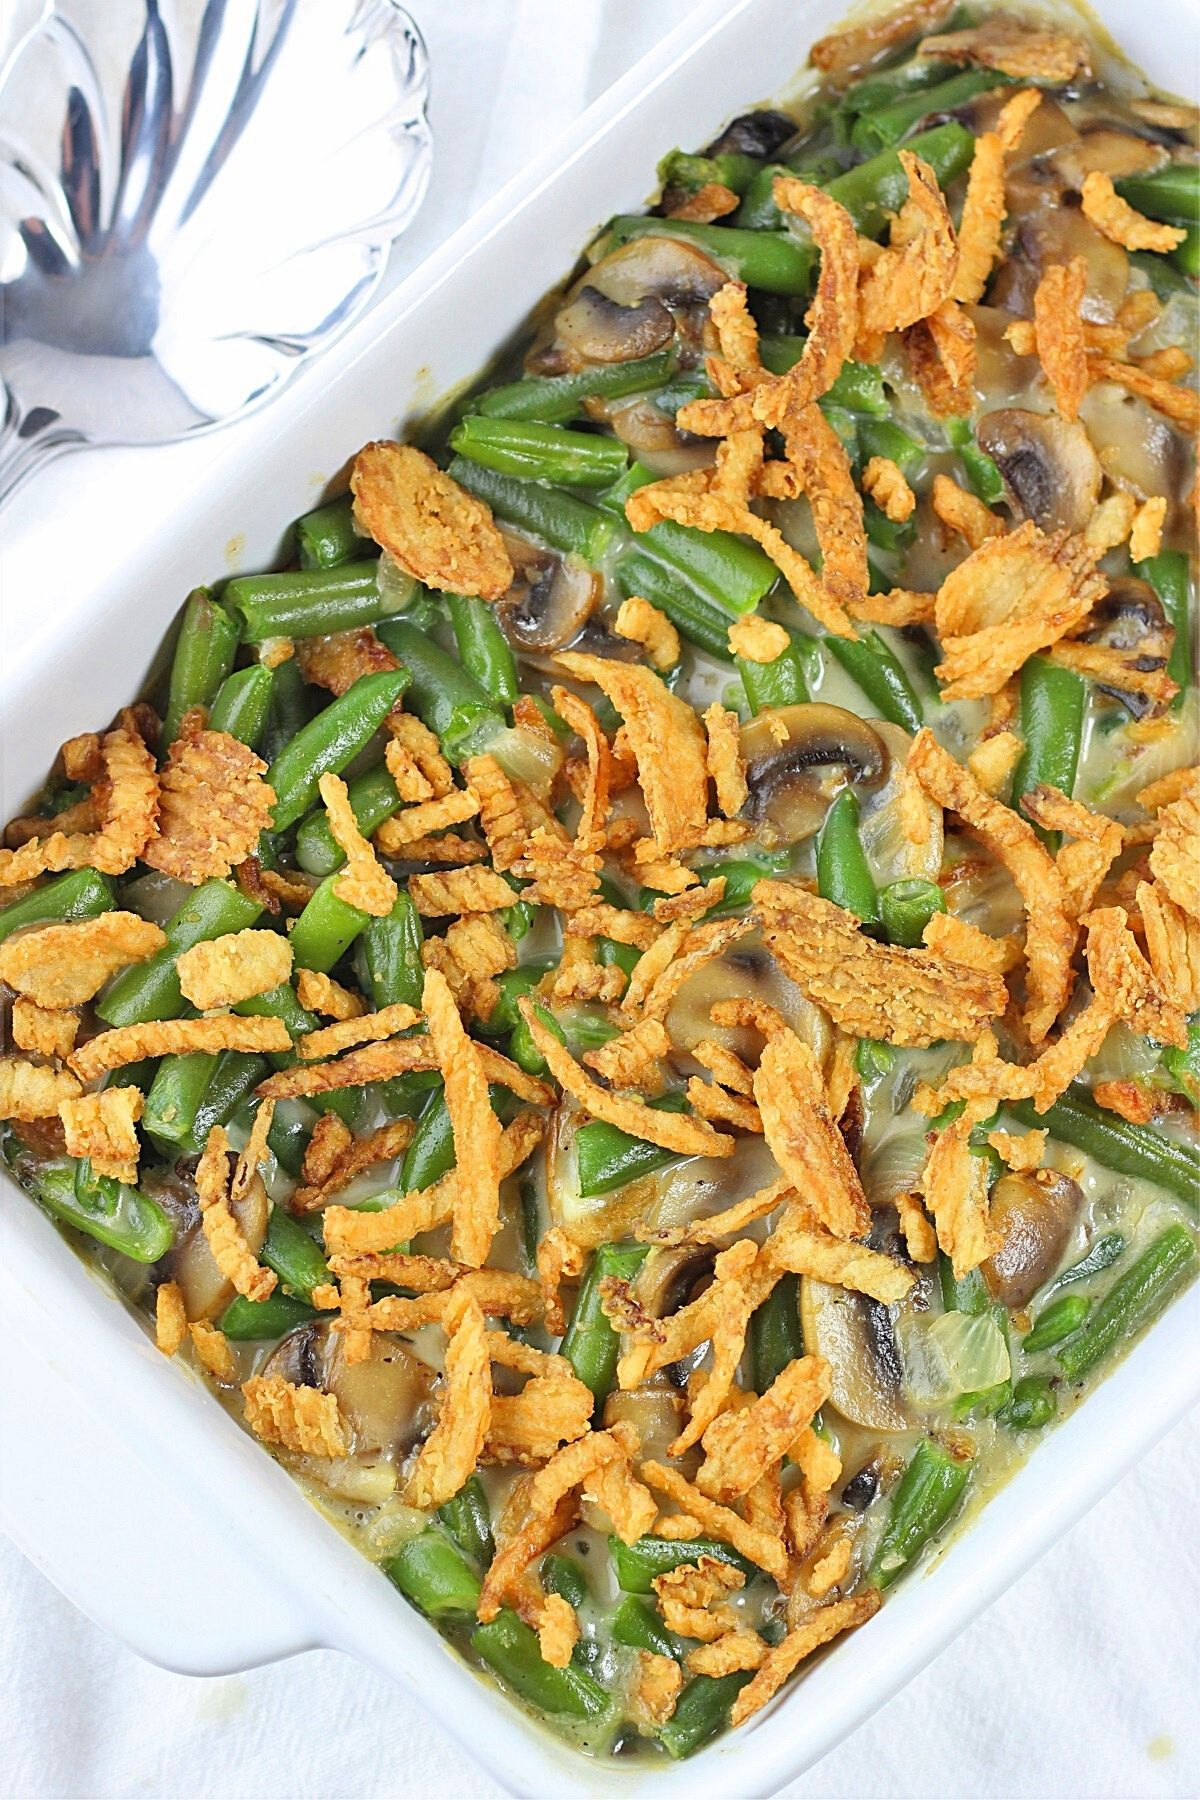 green bean casserole in a baking dish with a serving spoon on the side